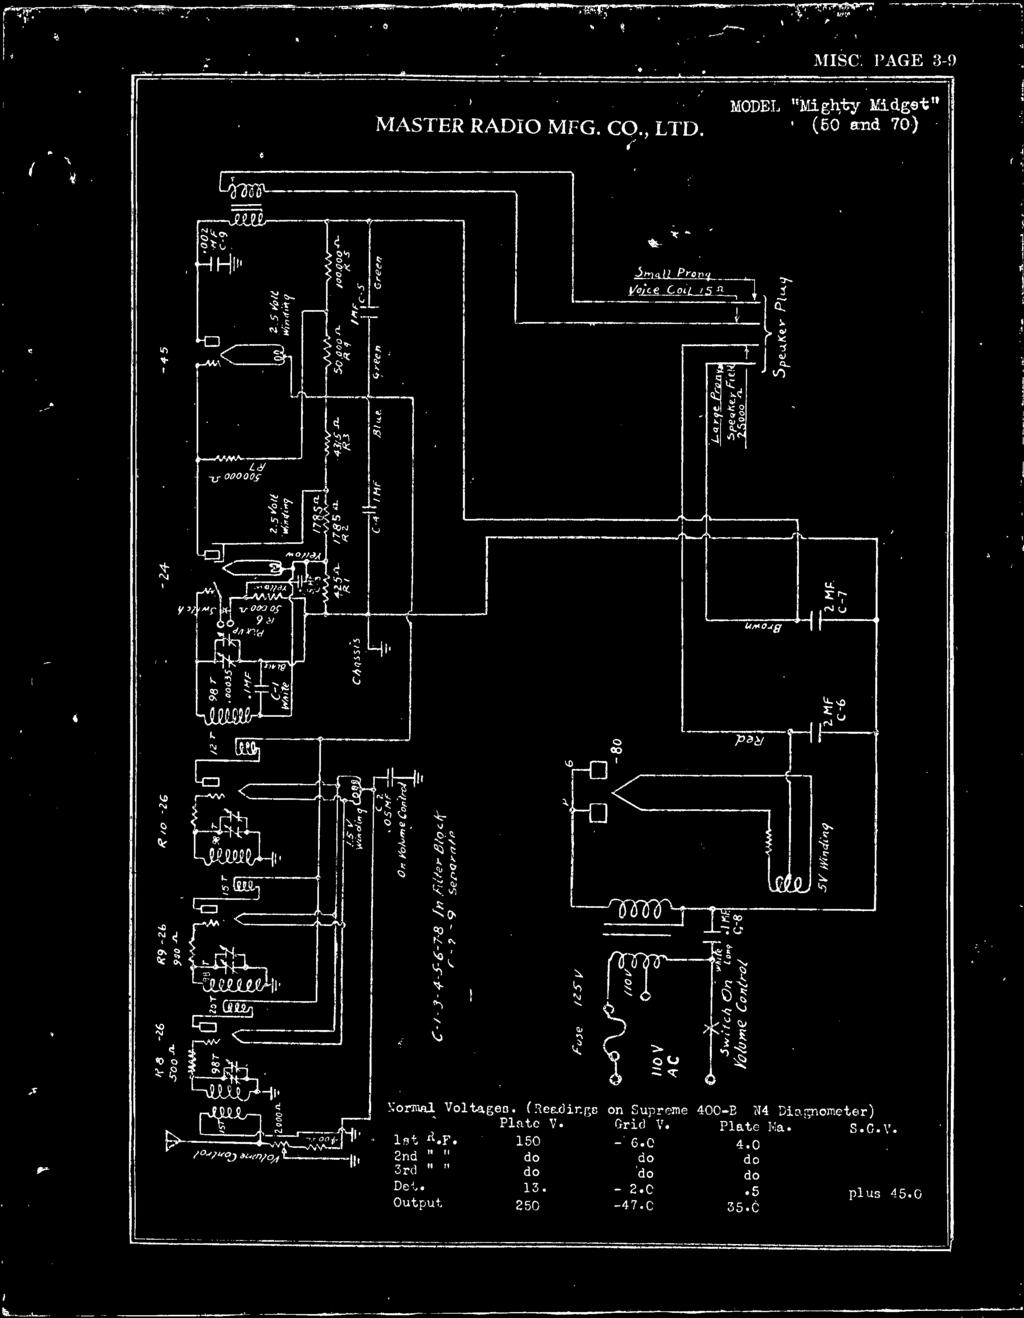 R Wr A 1kw Rmsmosfetamplifier Service Manual Free Download Schematics Rg N Co Pav V 0 Ee 1 F H Ti Oc